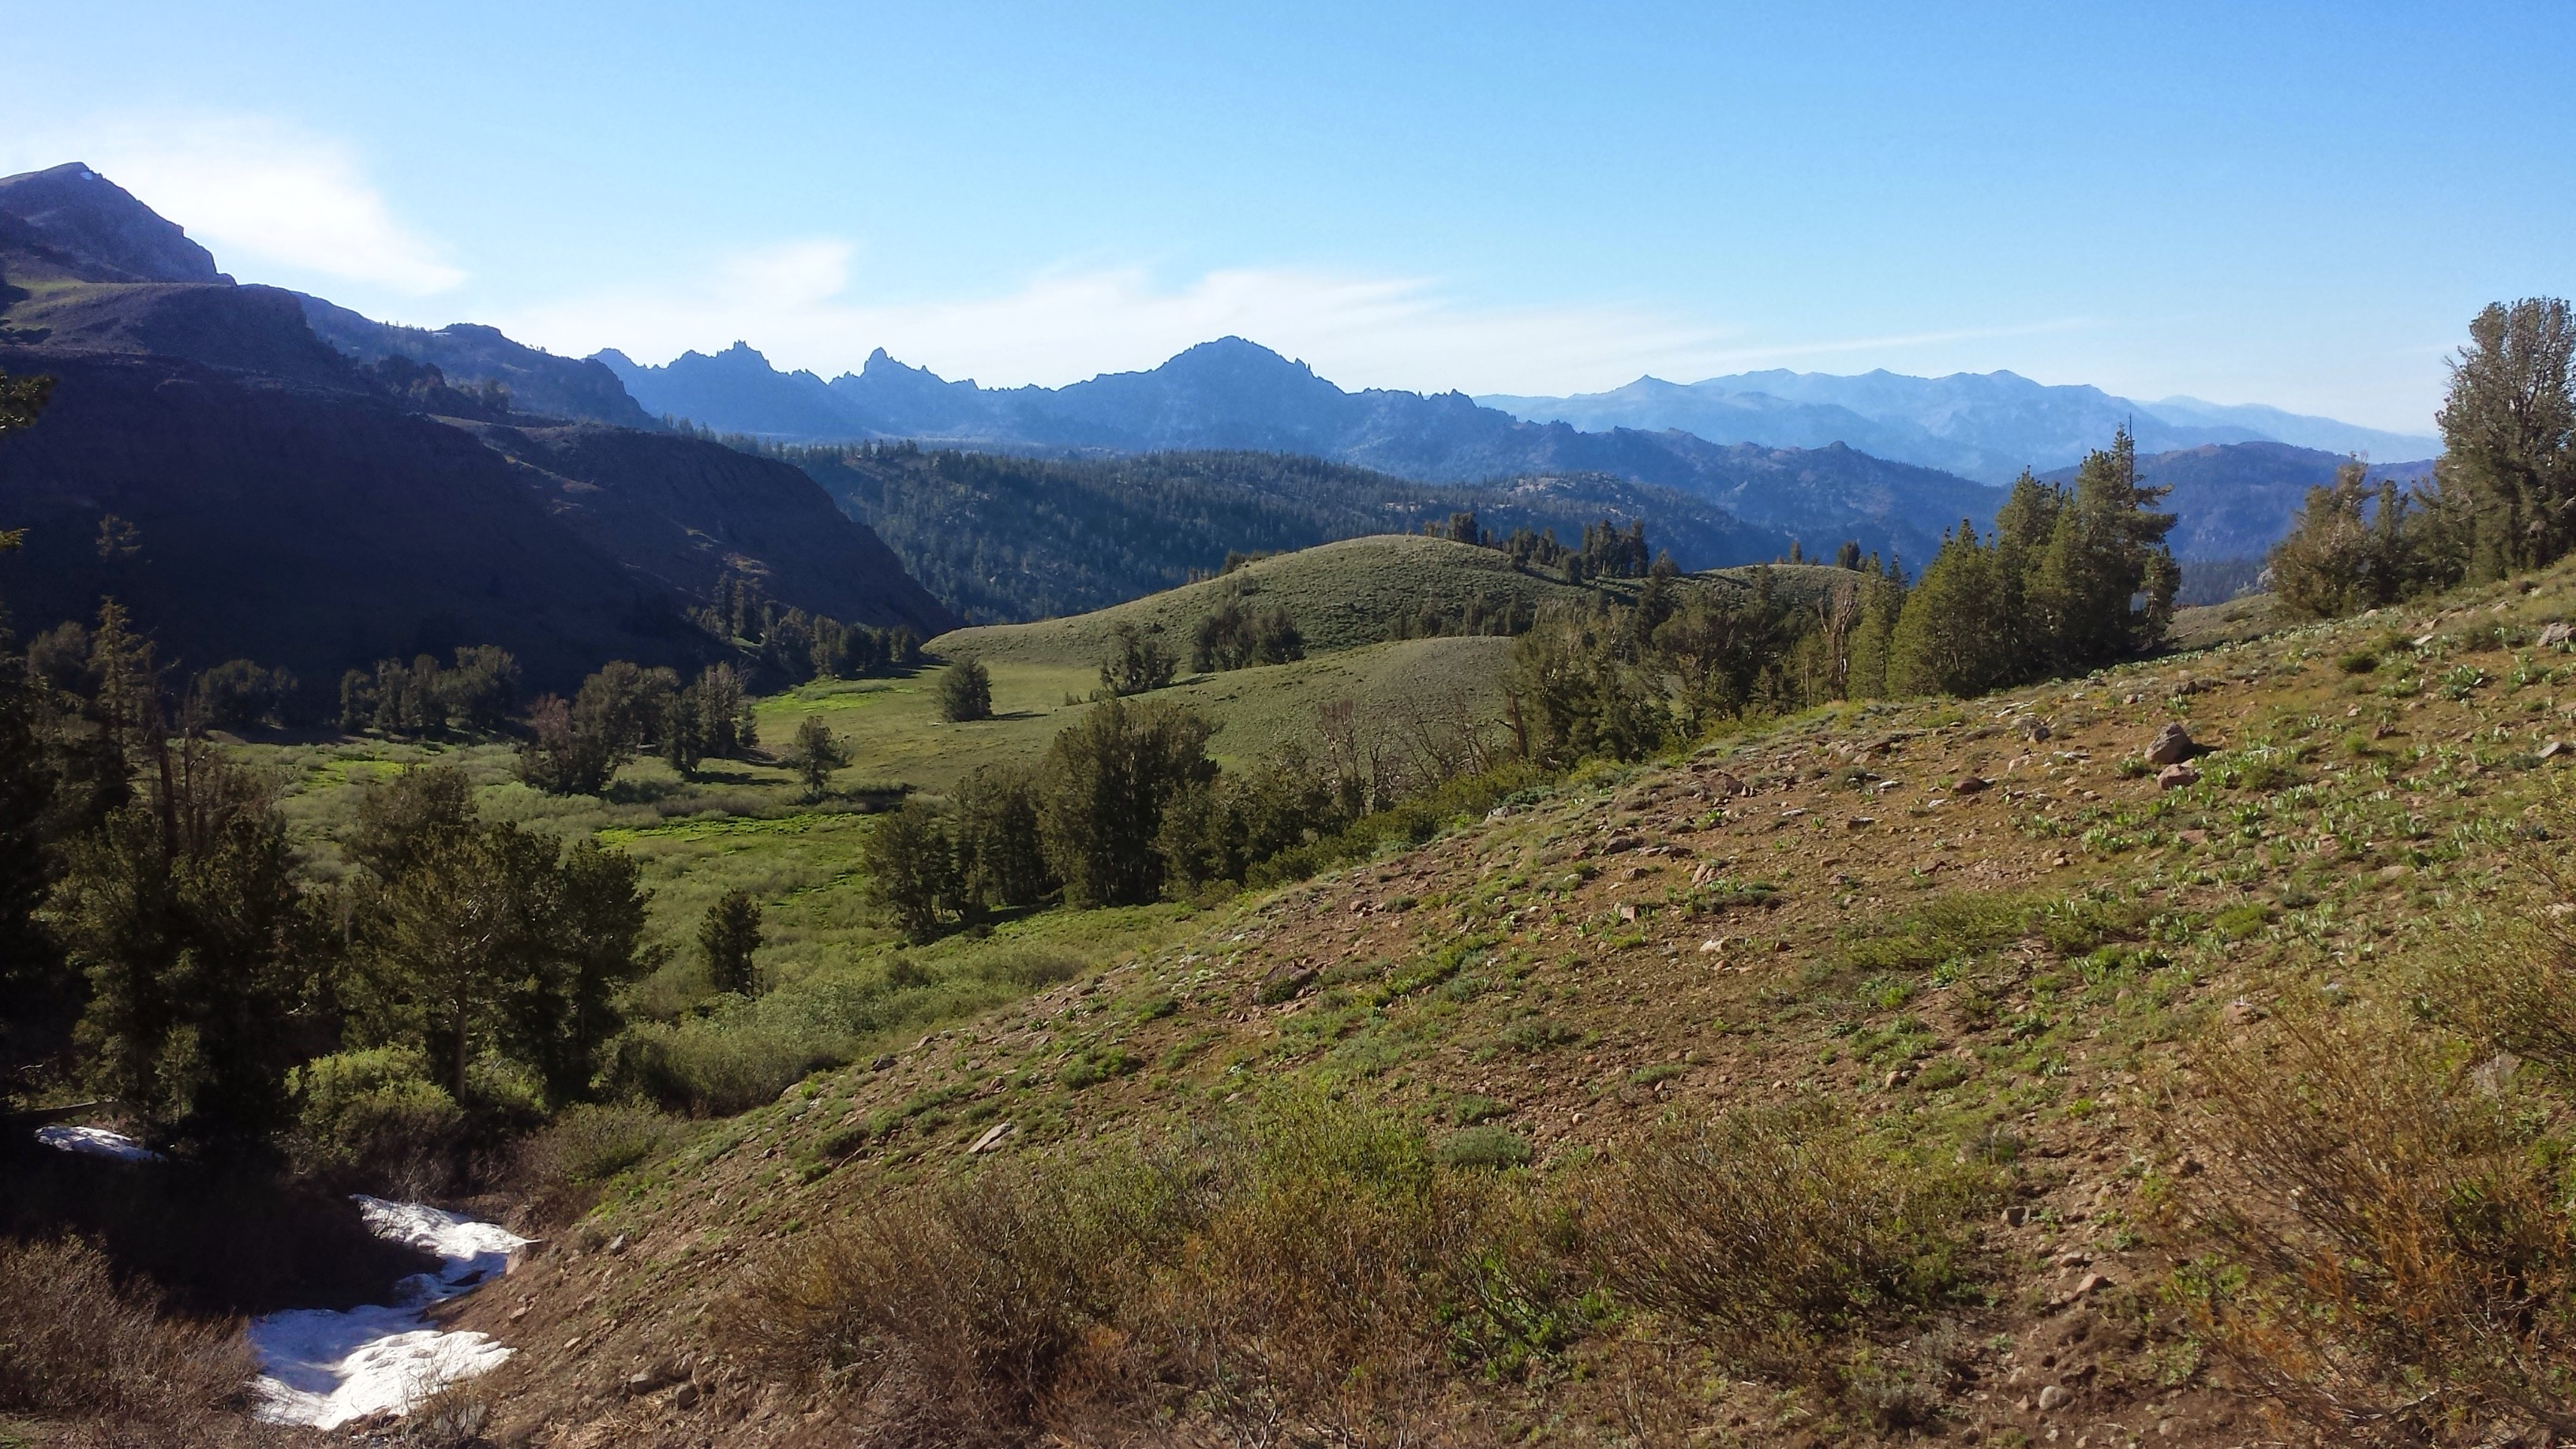 PCT Section J Toiyabe National Forest Carson Iceberg Wilderness